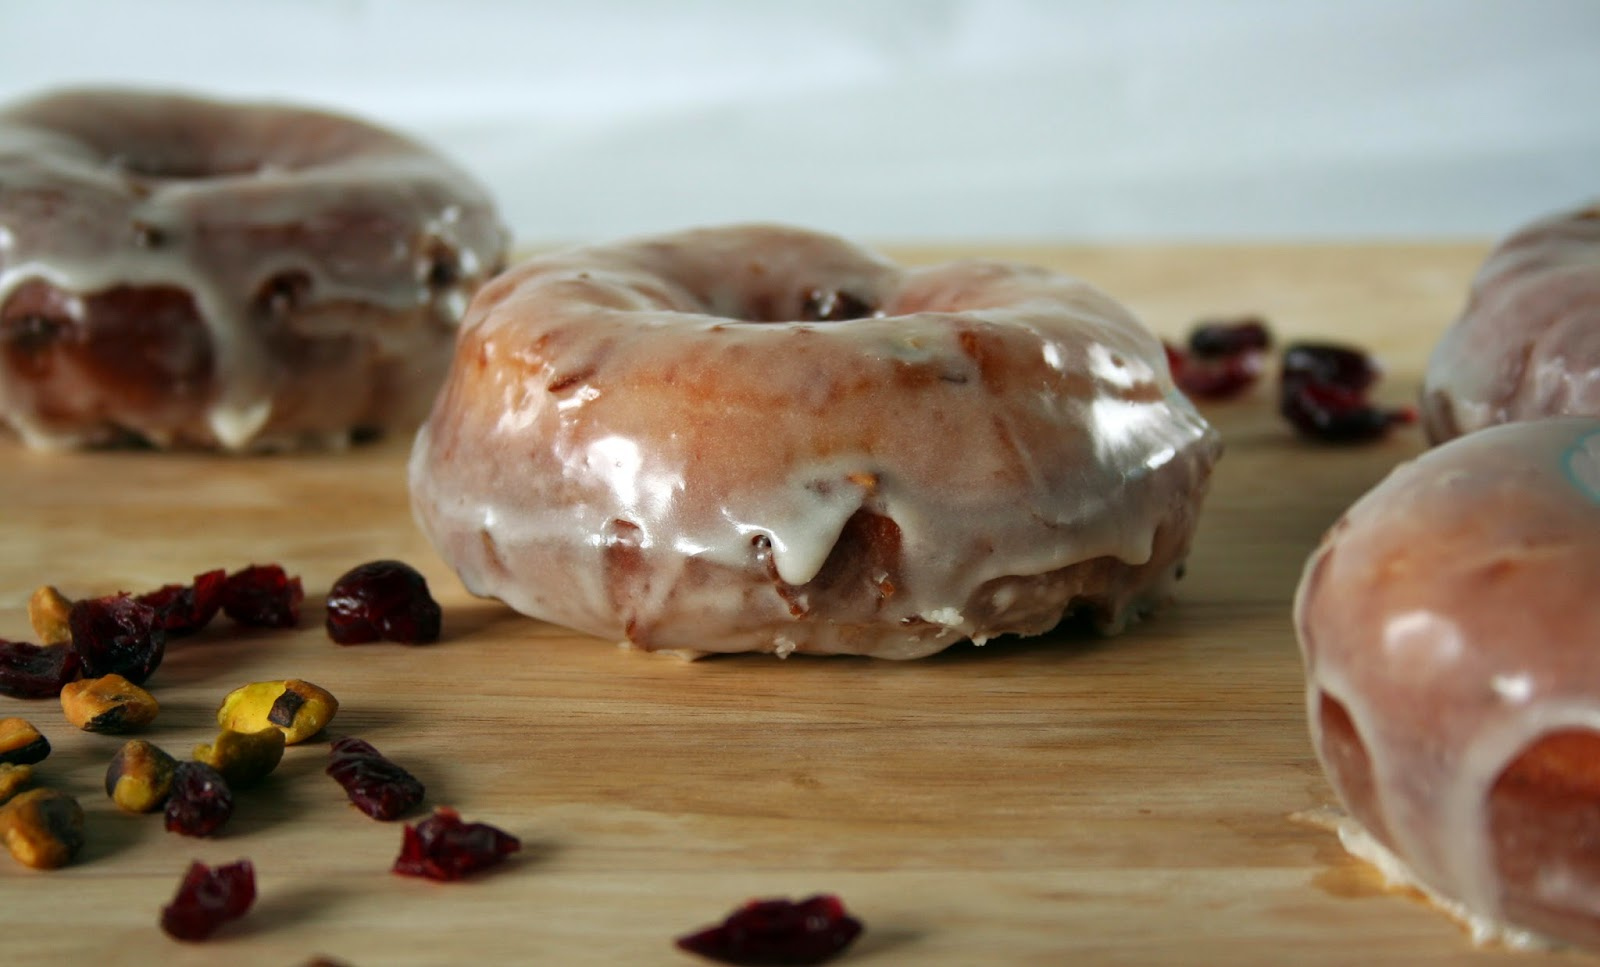 Homemade Raised Glazed Doughnuts